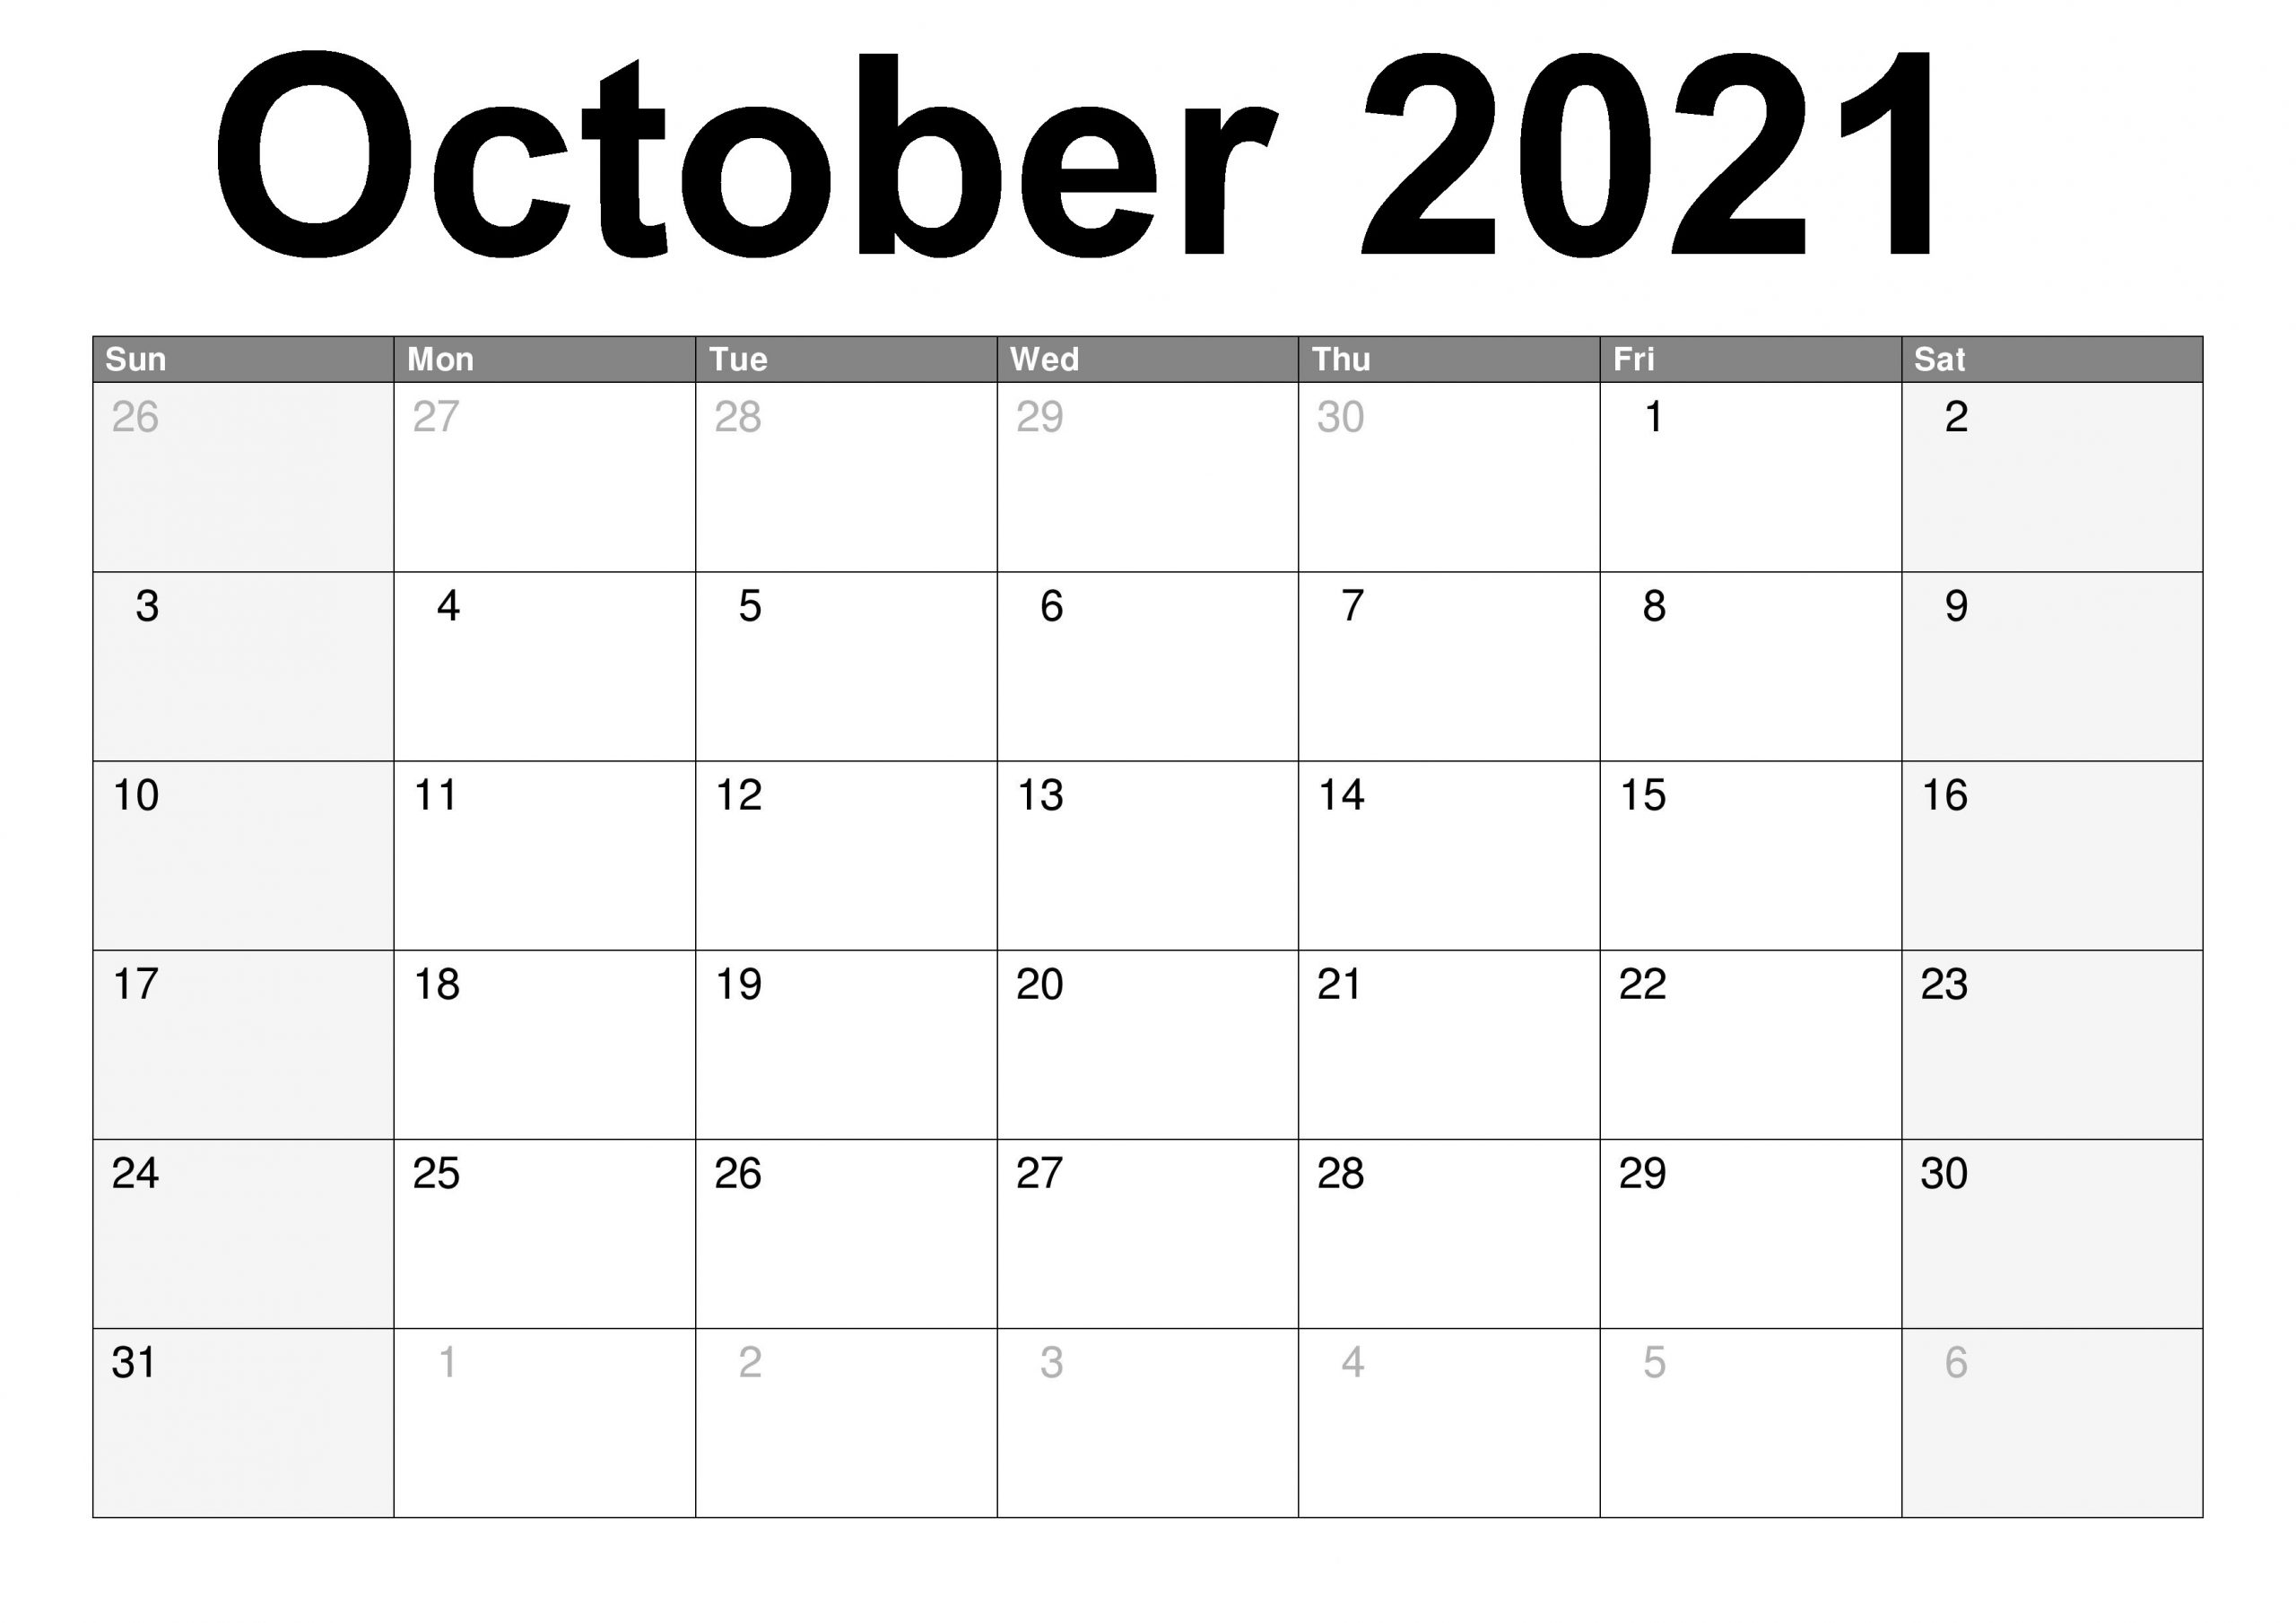 October 2021 Printable Calendar Cute Coloring Pages